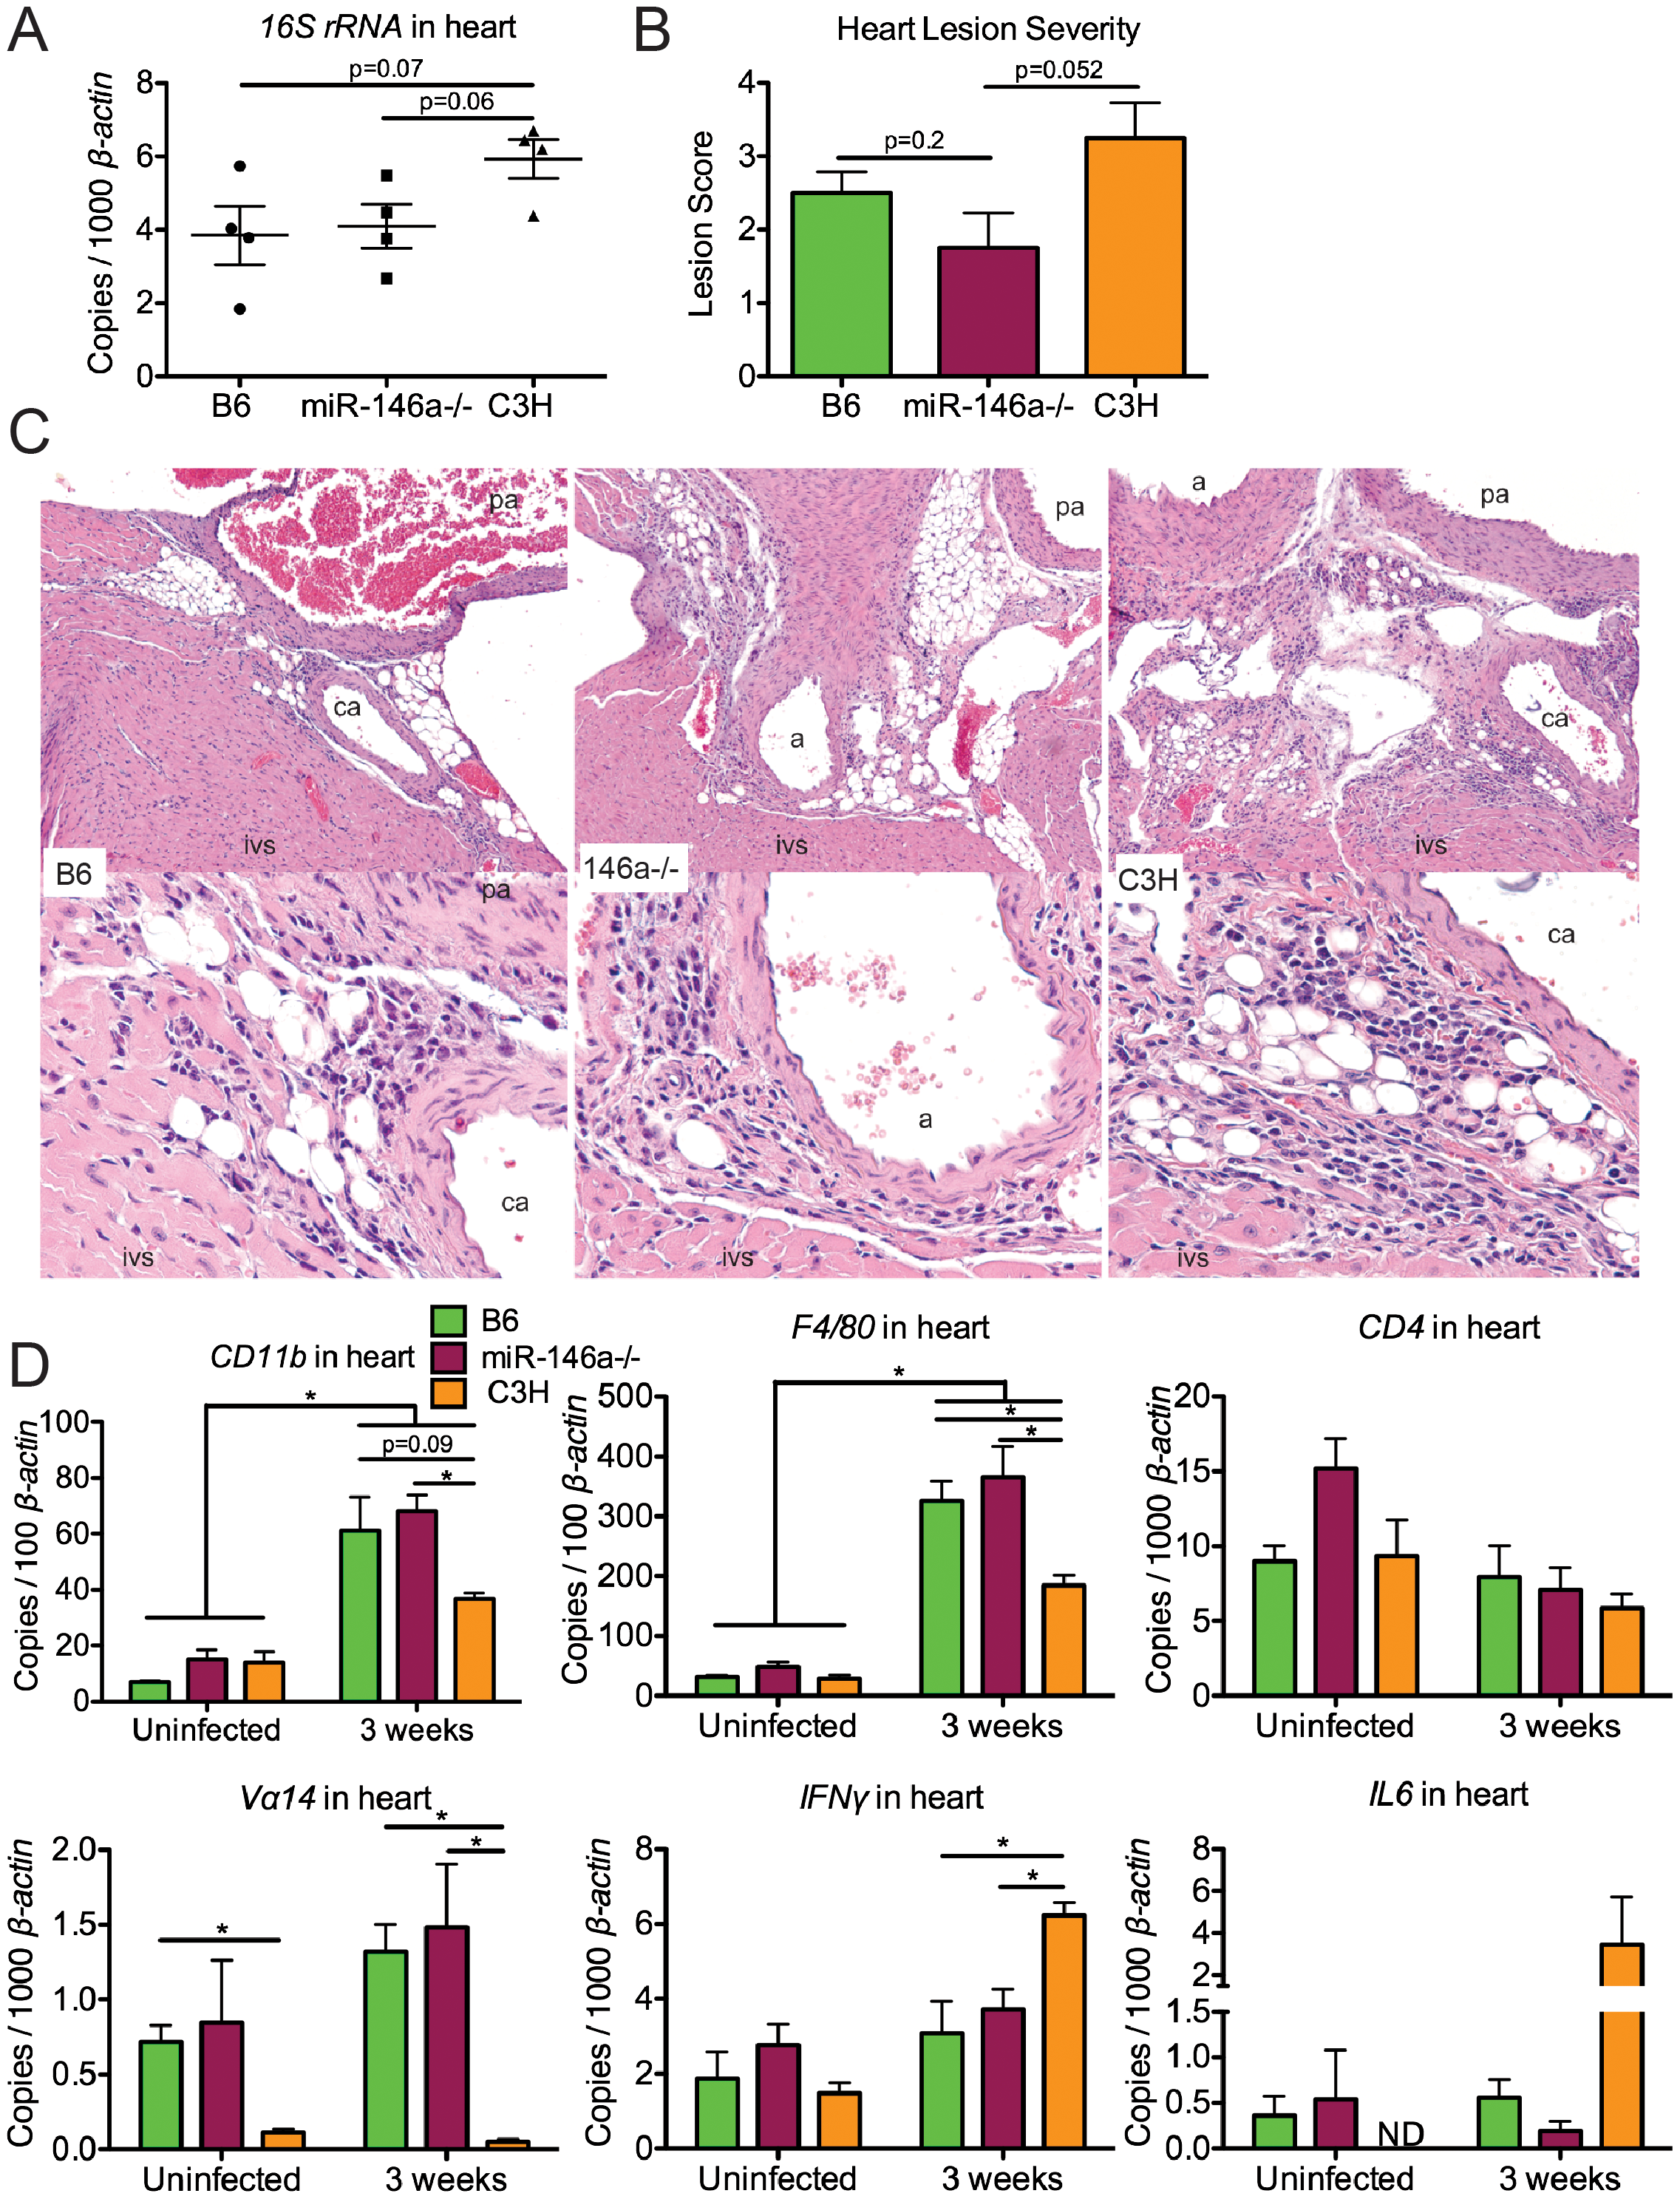 B6 and B6 miR-146a<sup>−/−</sup> mice have similar <i>B. burgdorferi</i> burden and similar levels of inflammation in heart tissue, distinct from C3H mice.